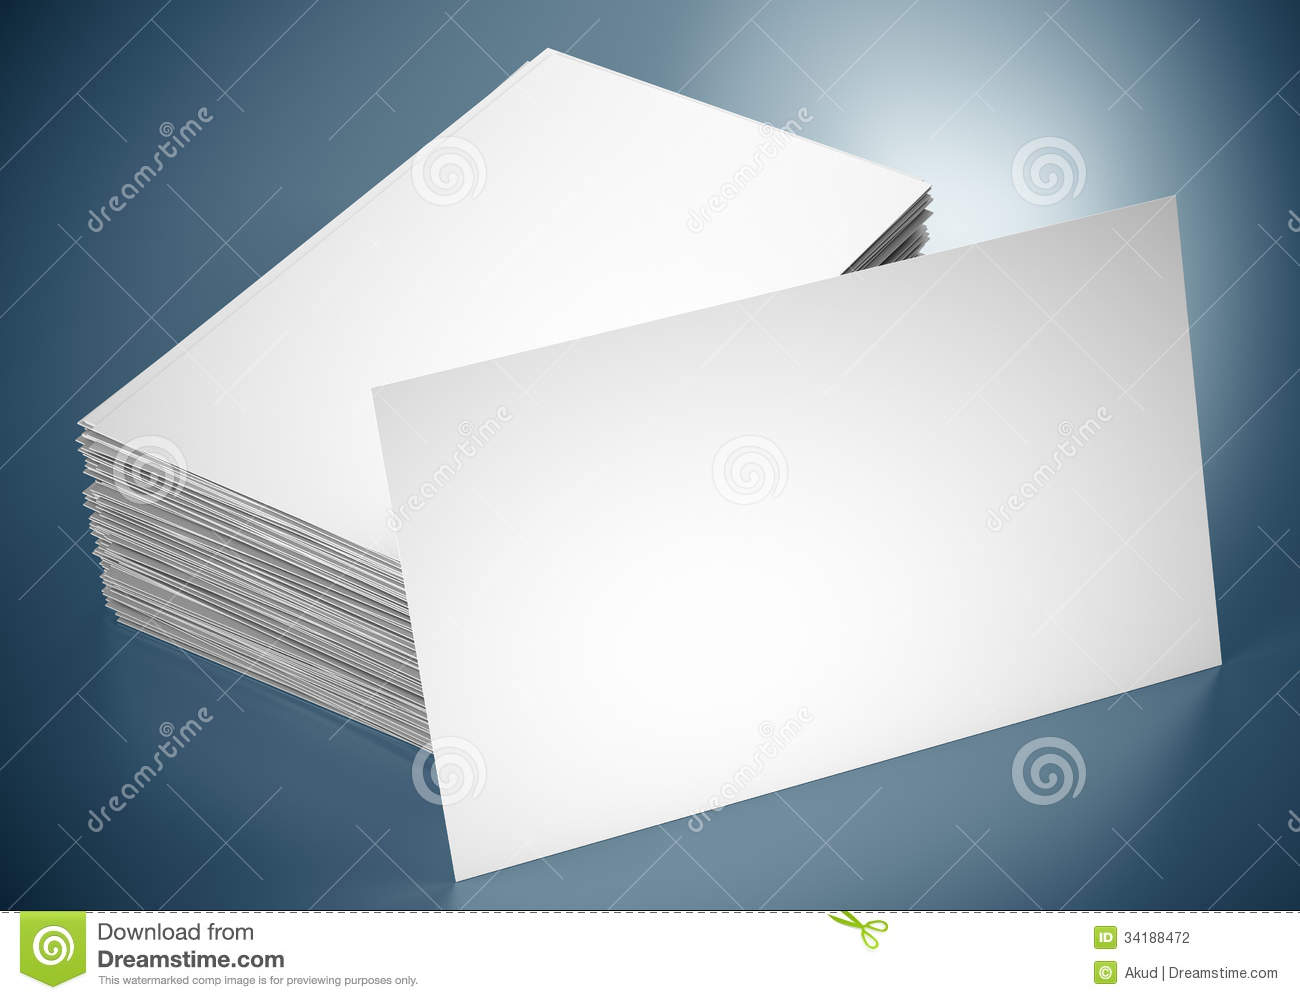 Blank Business Cards Stock graphy Image